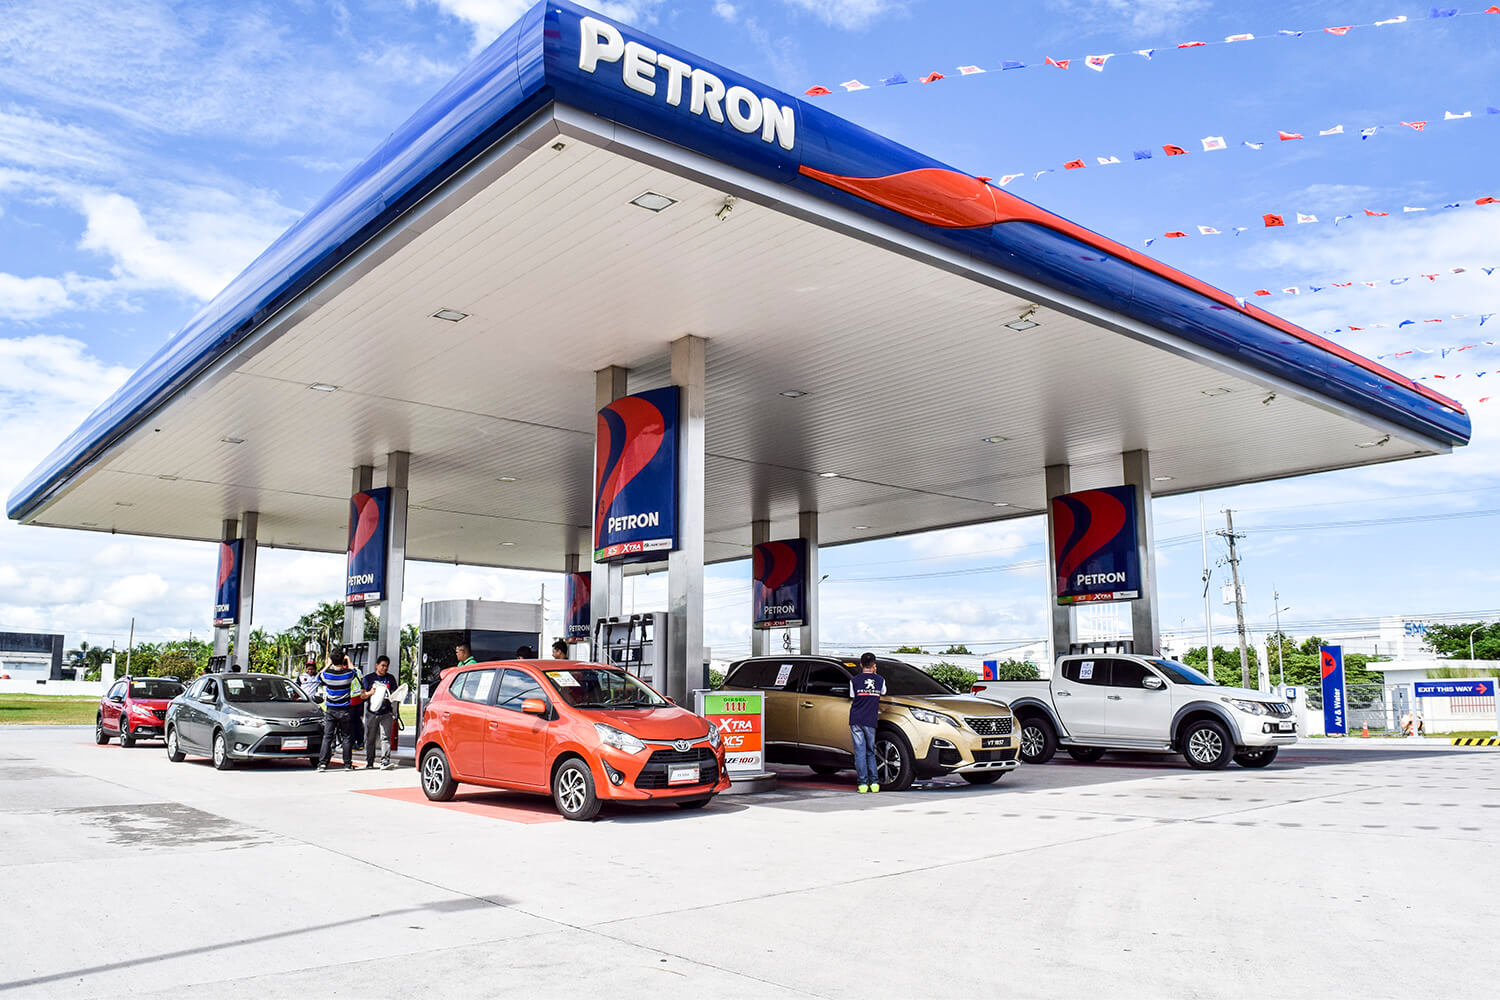 Petron fuels deliver extraordinary efficiency ratings